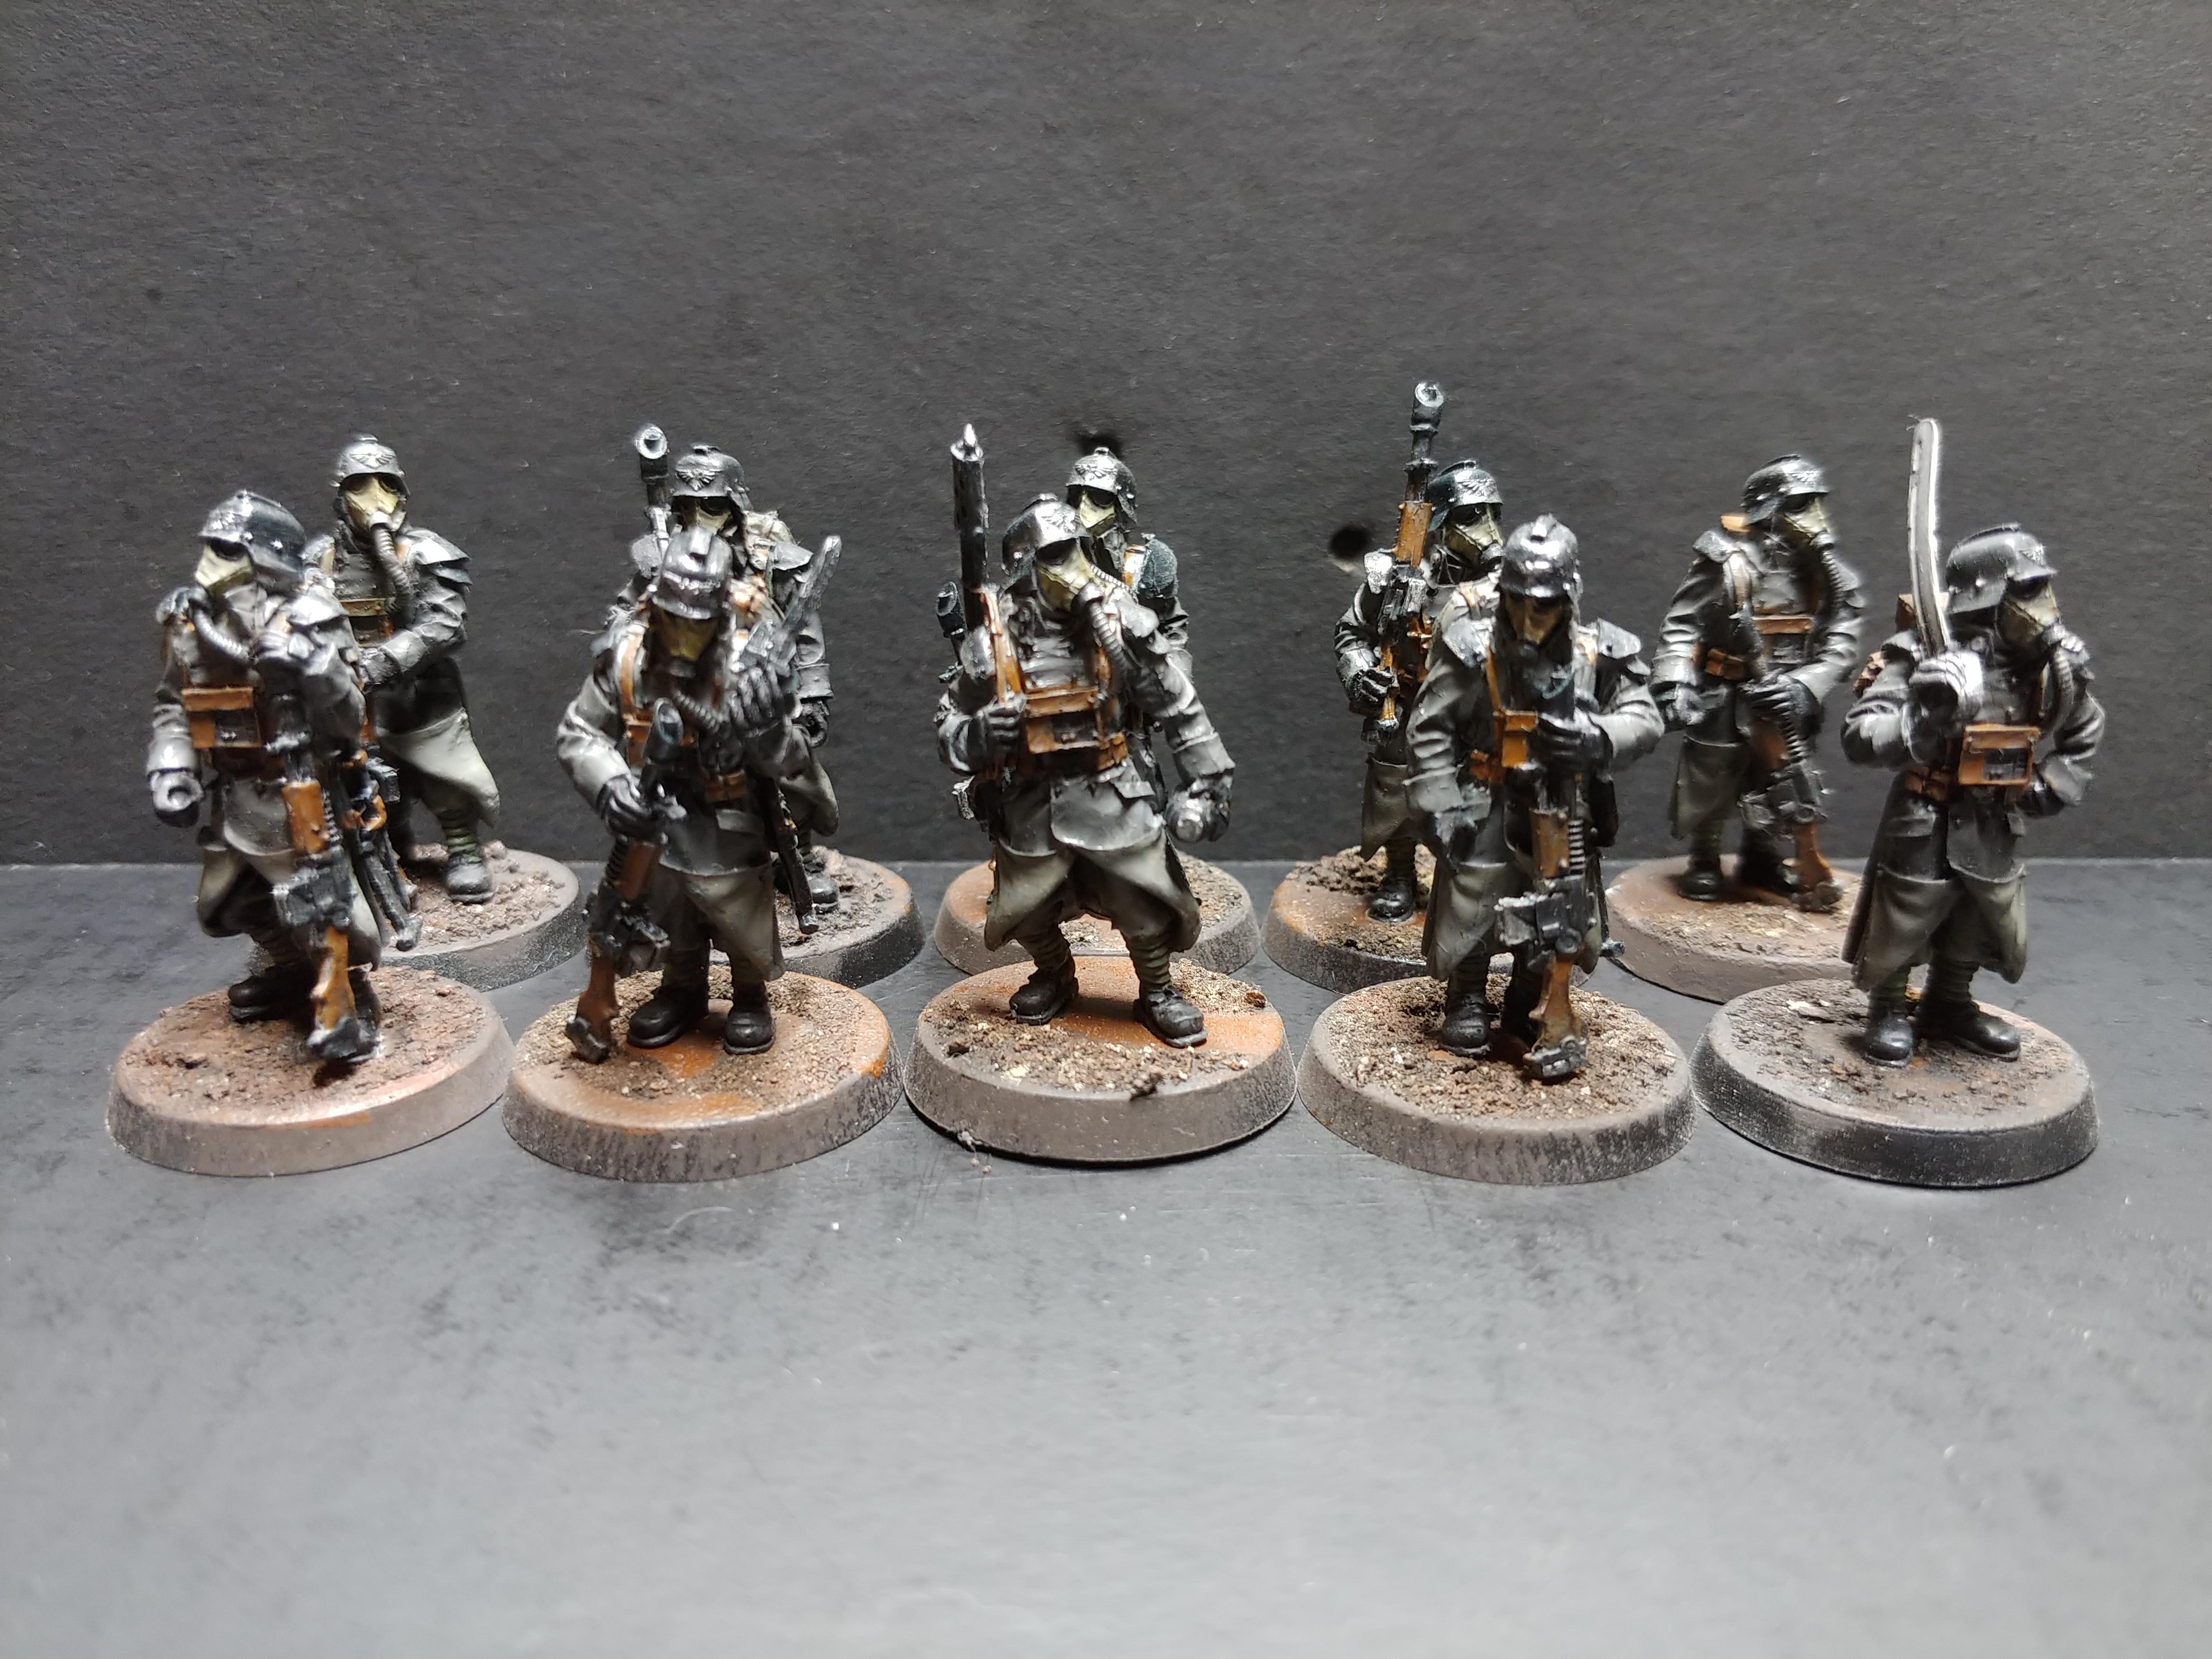 Based, Death, Death Korps of Krieg, Forge, Forge World, Germans, Infantry, Krieger, Kriegers, Lasgun, Mud, Warhammer 40,000, Warhammer Fantasy, World